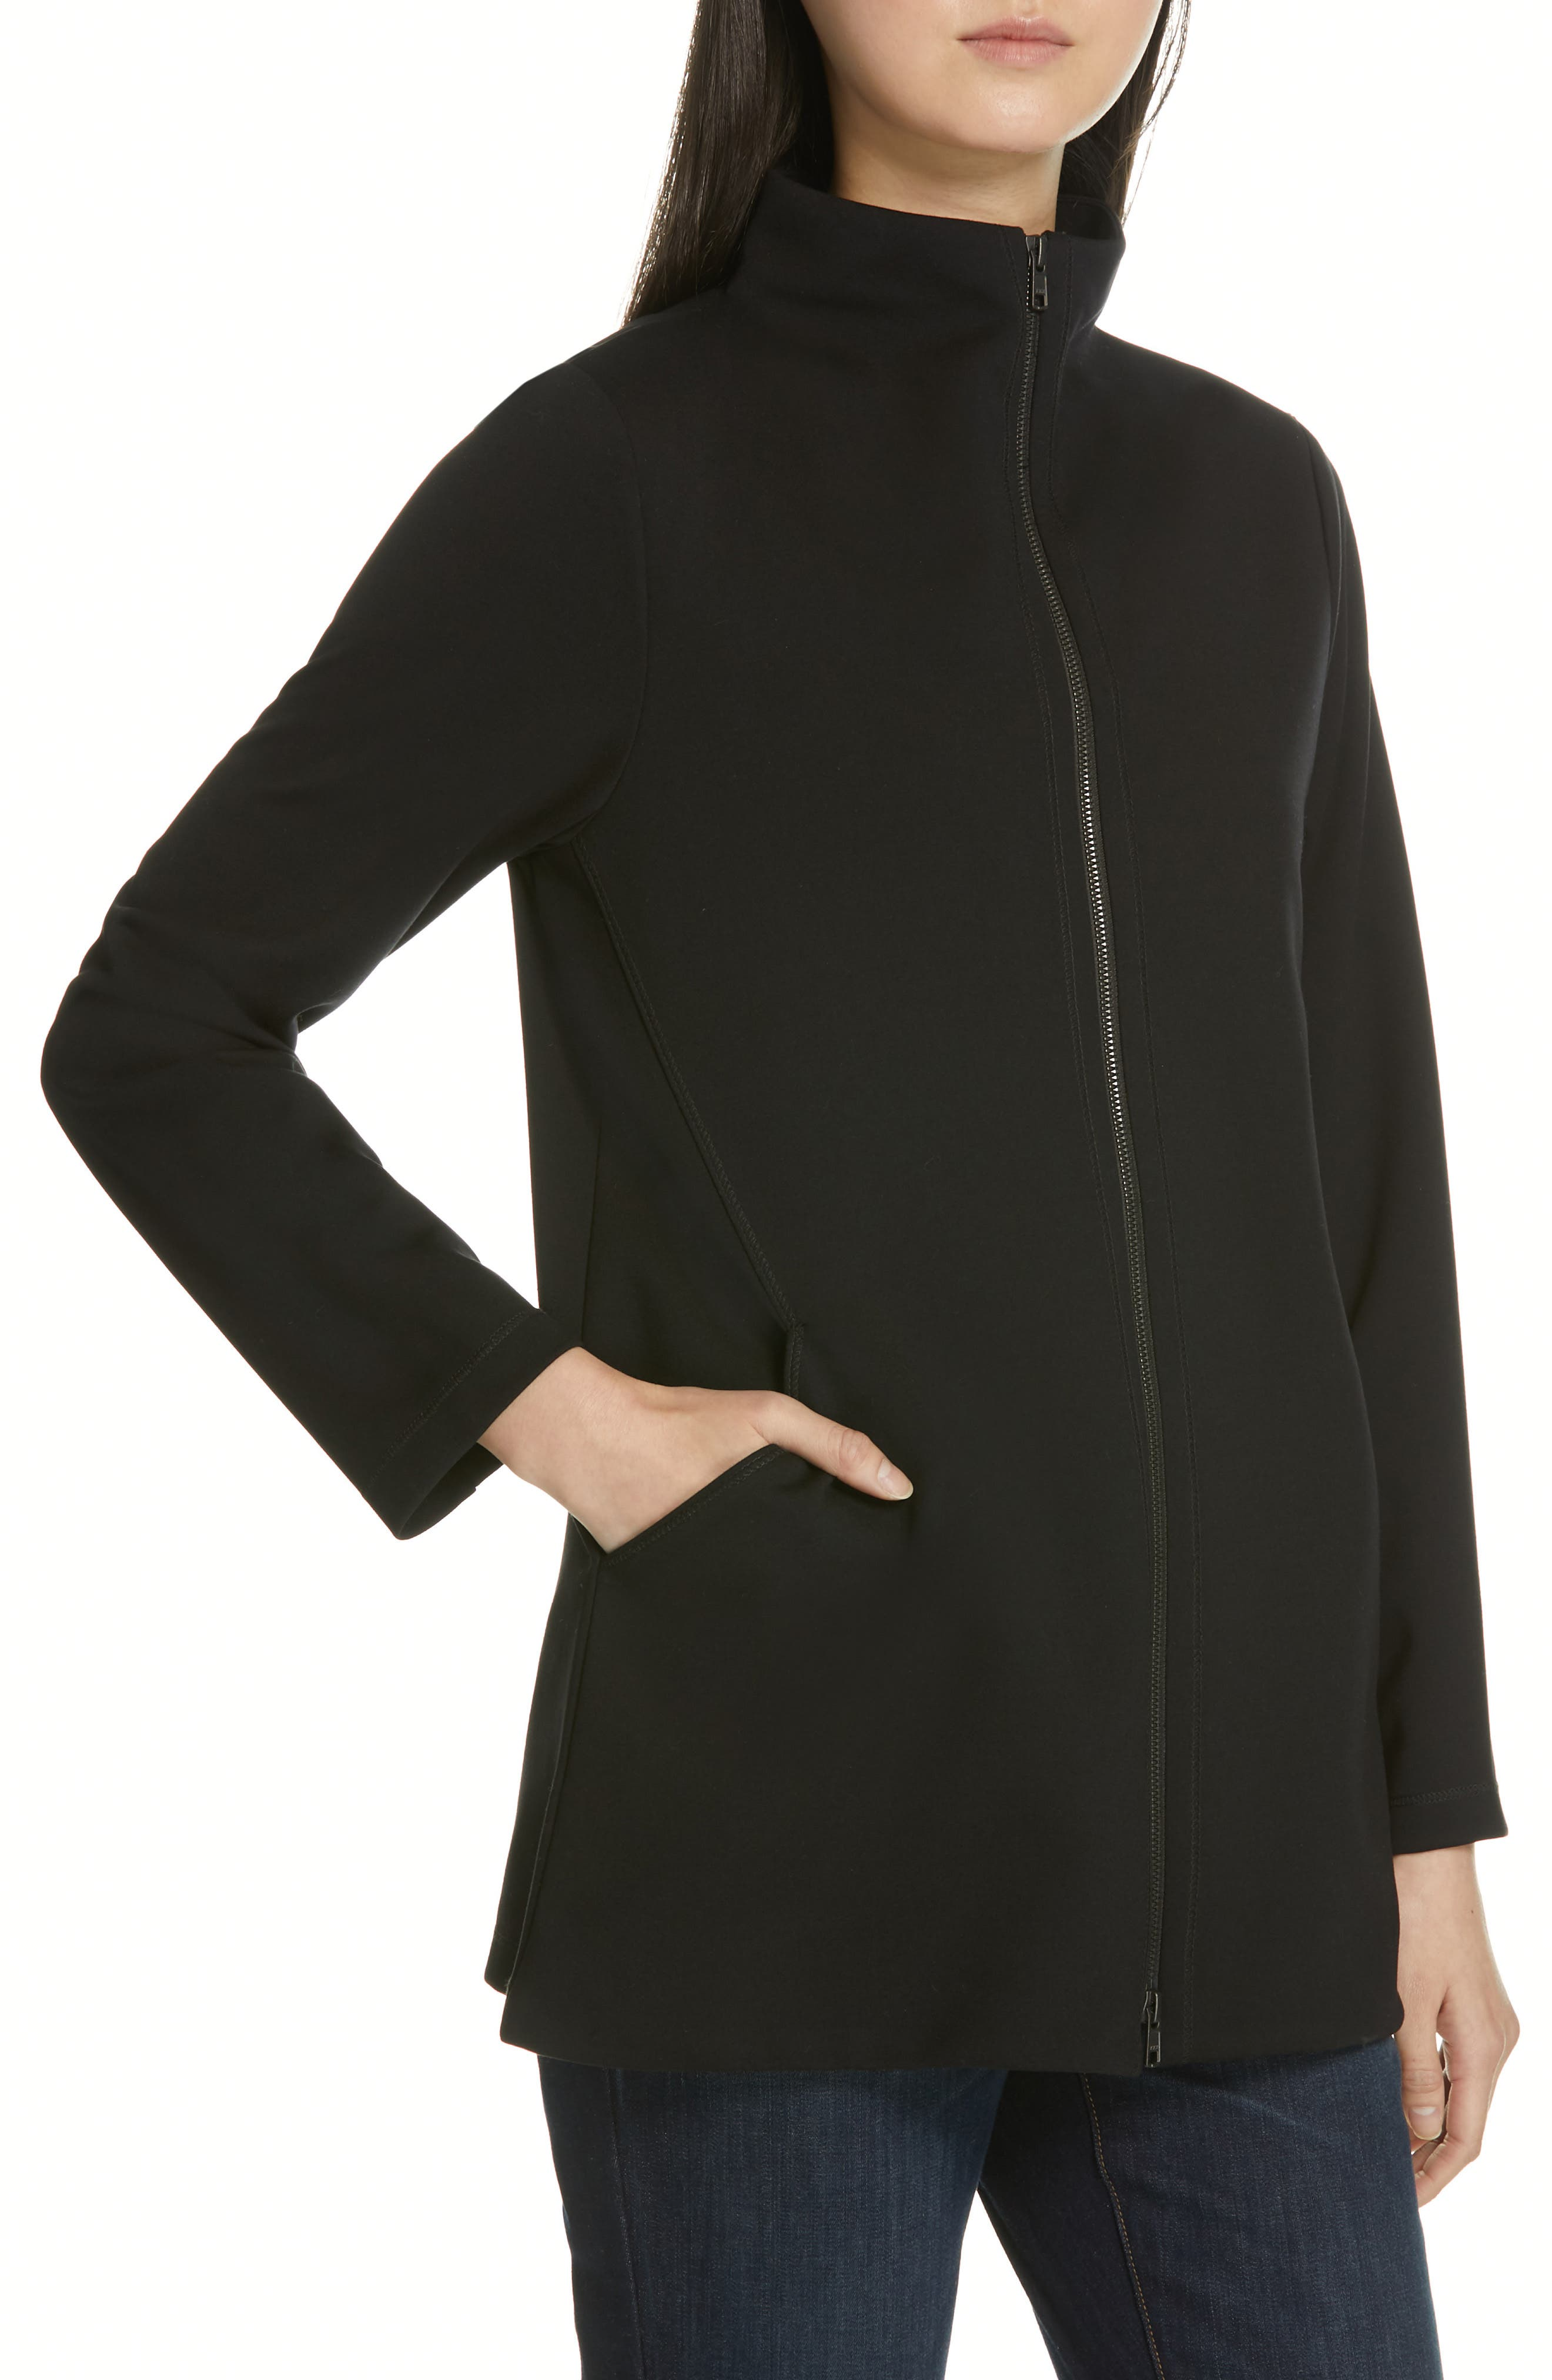 EILEEN FISHER, Zip Front Jacket, Alternate thumbnail 5, color, 001